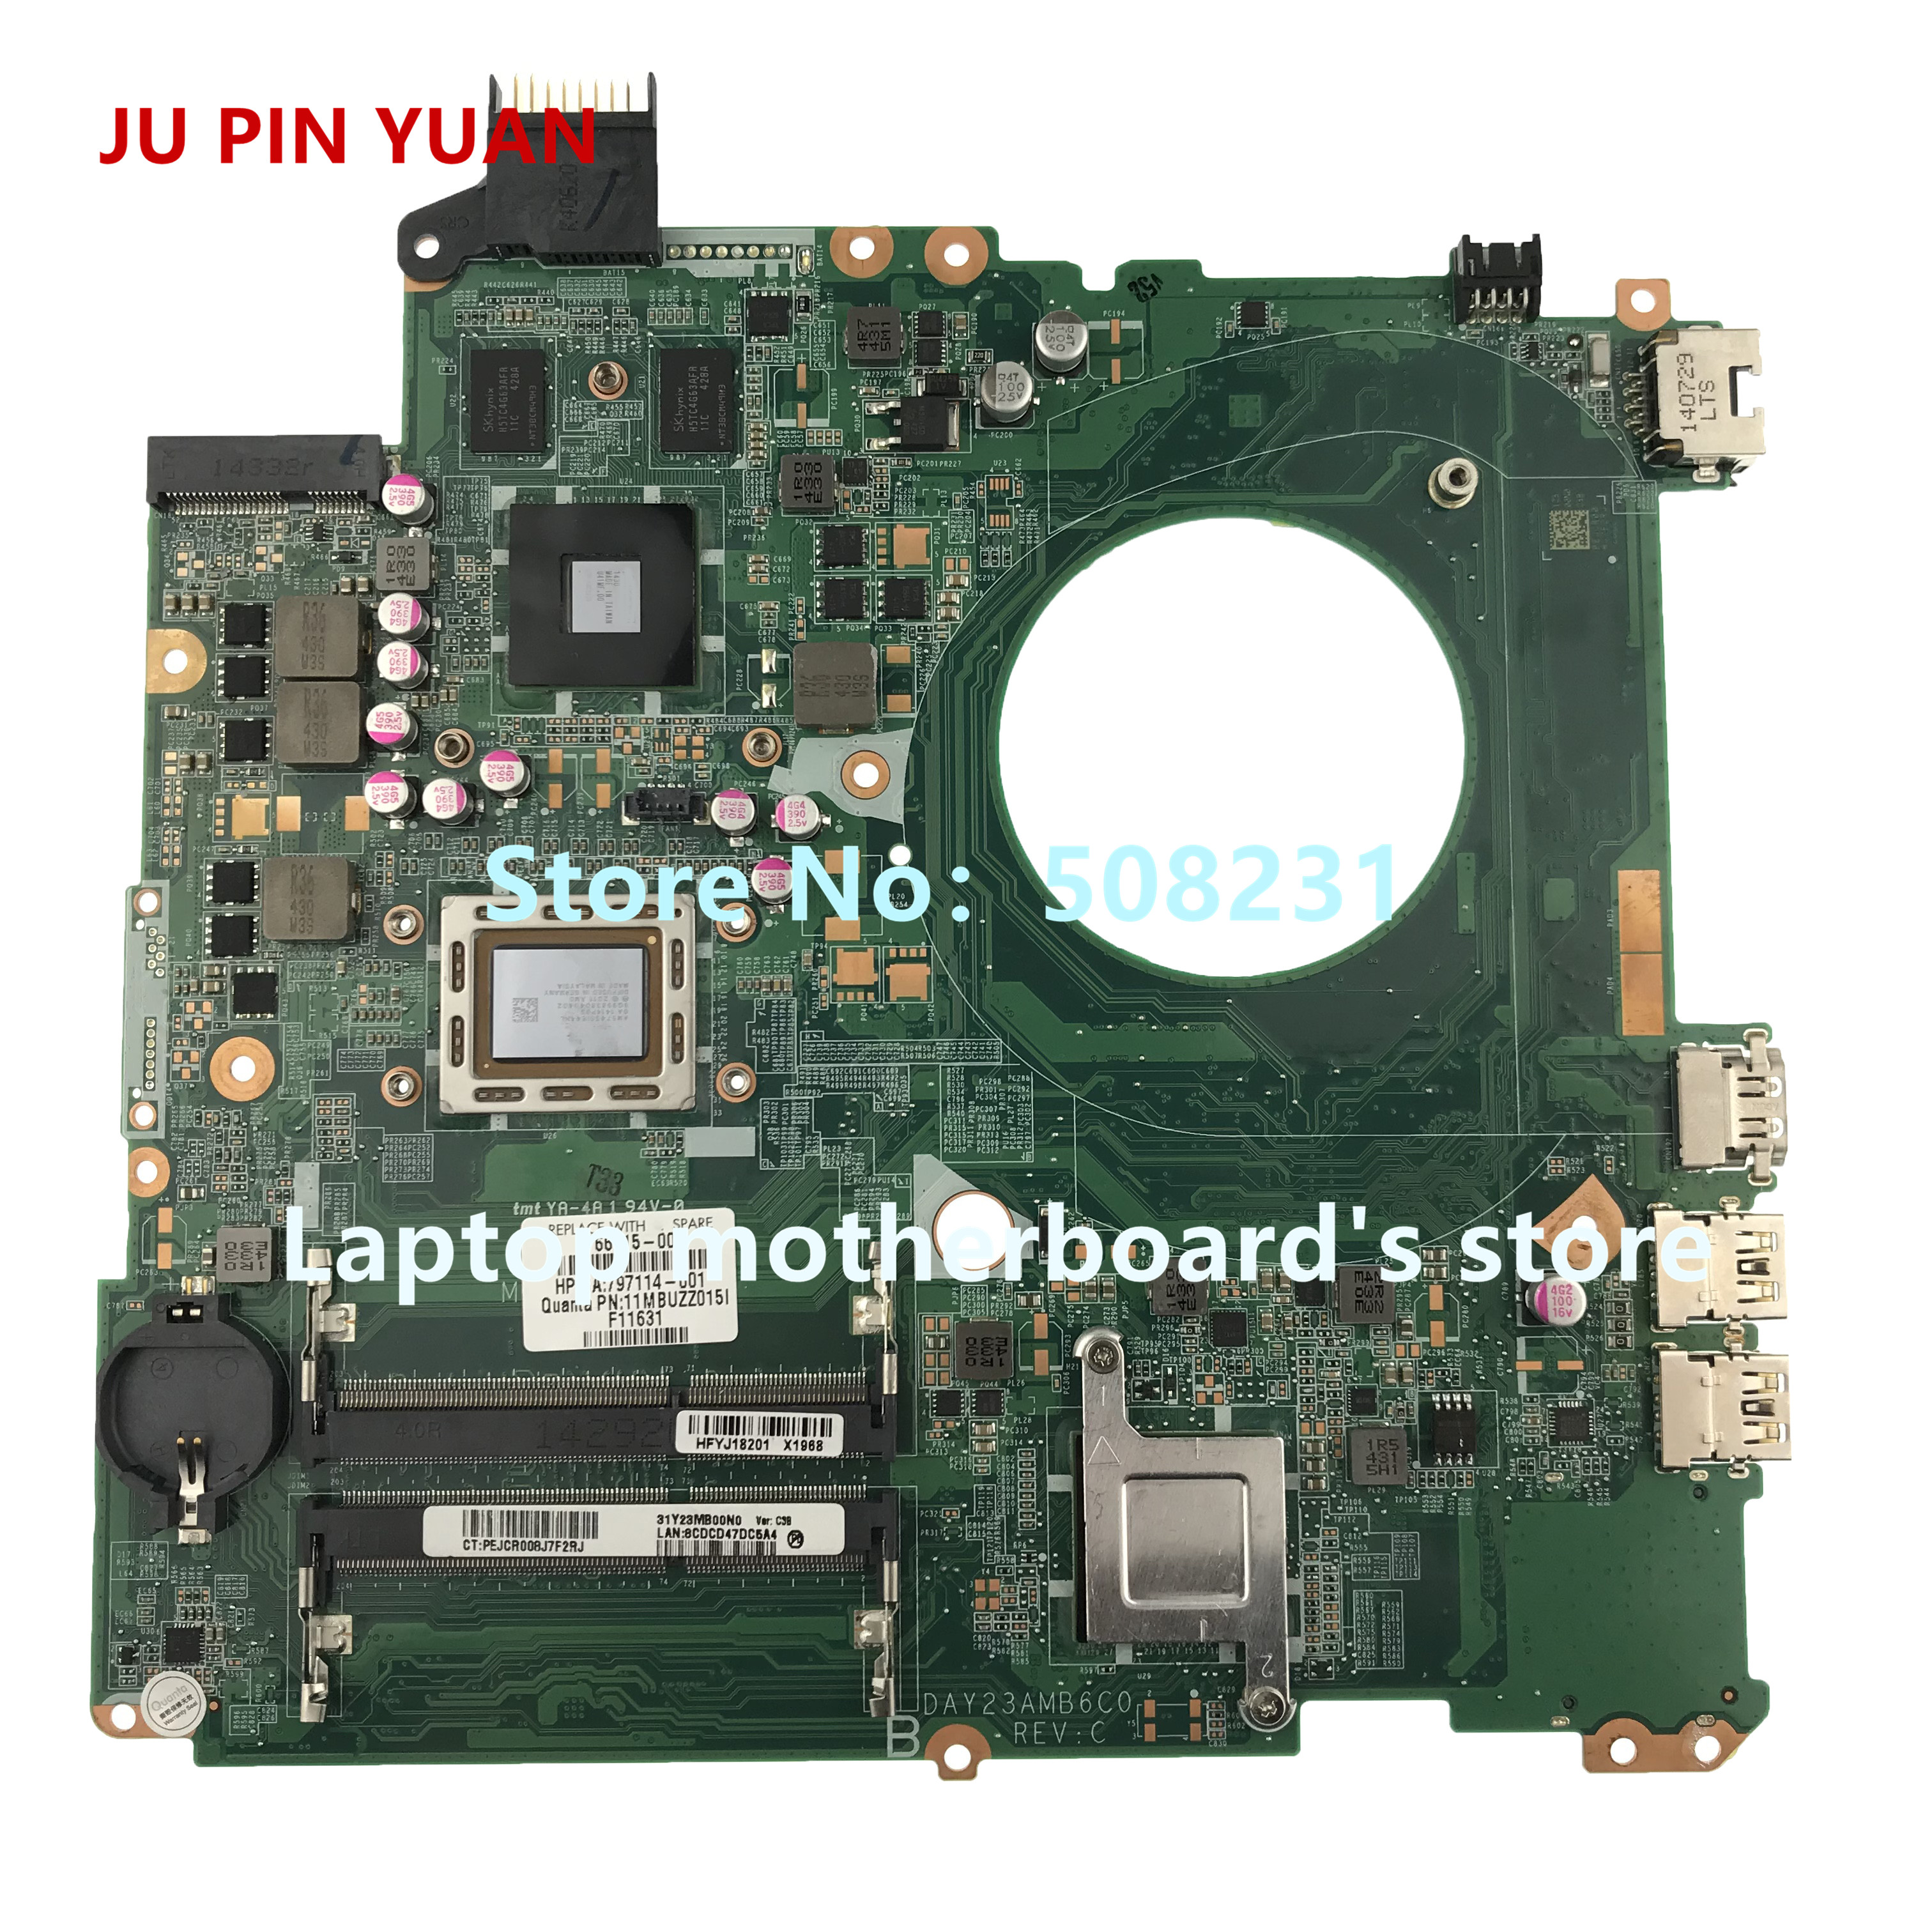 JU PIN YUAN 766715-501 766715-001 DAY23AMB6F0 Mainboard For HP Pavilion 15Z-P 15-P Laptop Motherboard A10-5745M Fully Tested